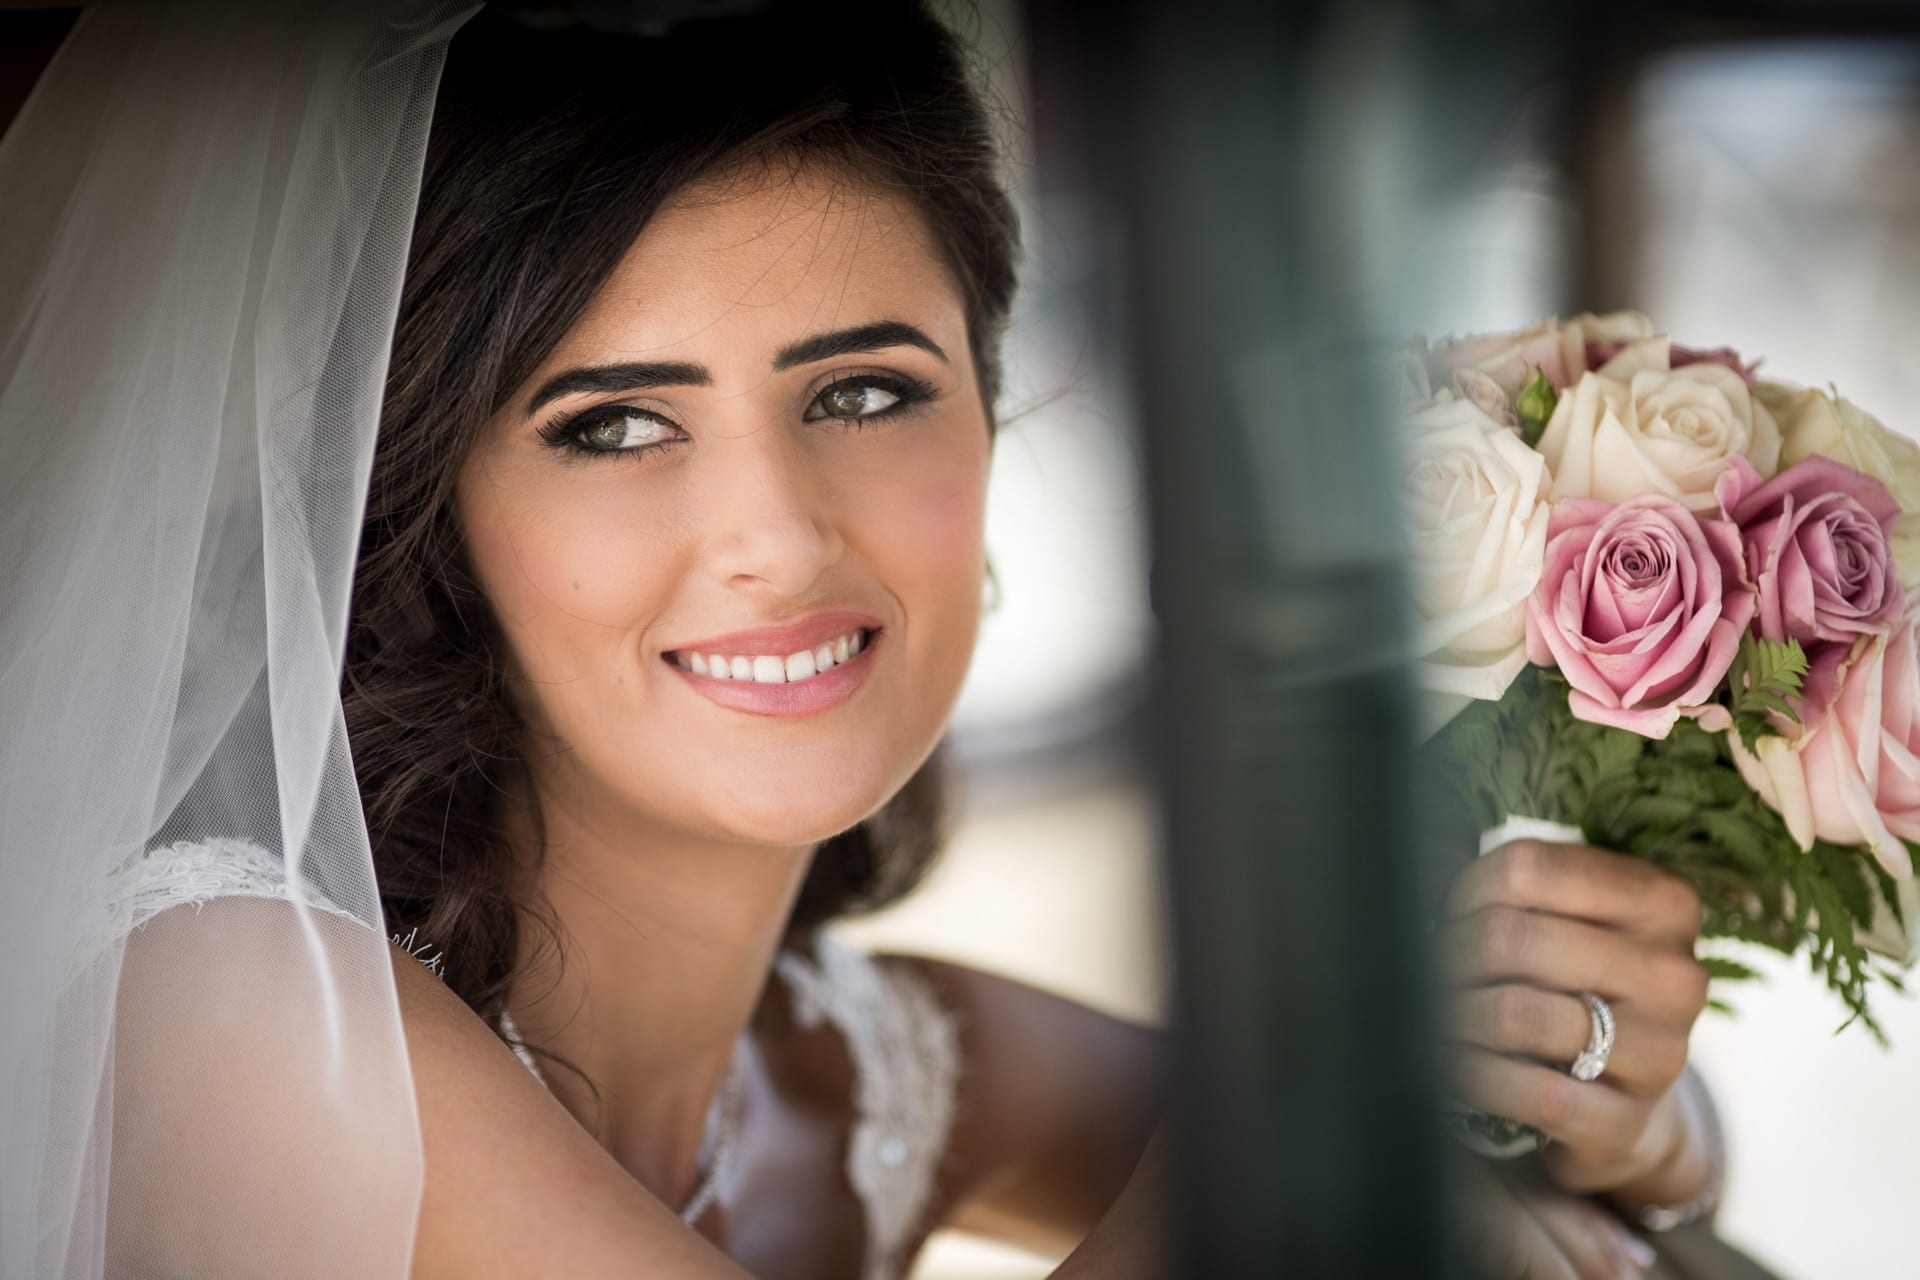 https://s3-eu-central-1.amazonaws.com/righiphotography-com/wp-content/uploads/2020/02/02183346/Weddin-Photo-Classic-Style-Studio-Fotografico-Righi-RIGHI-25.jpg